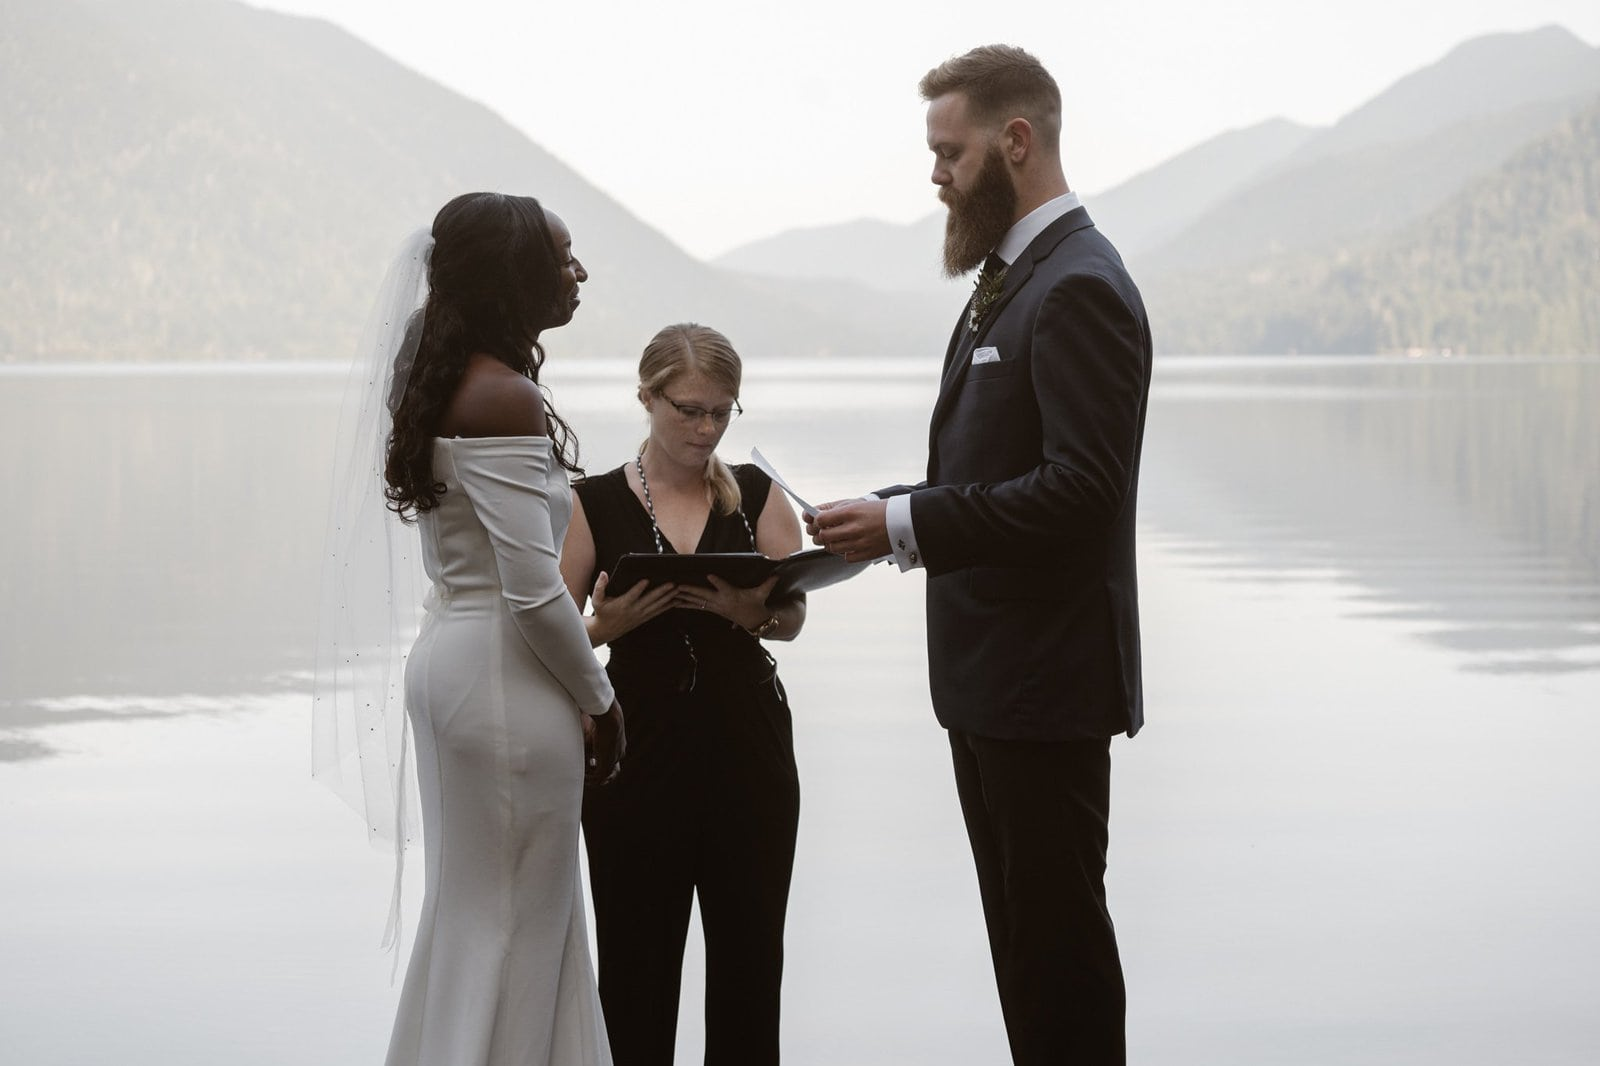 Exchanging vows with the bride.